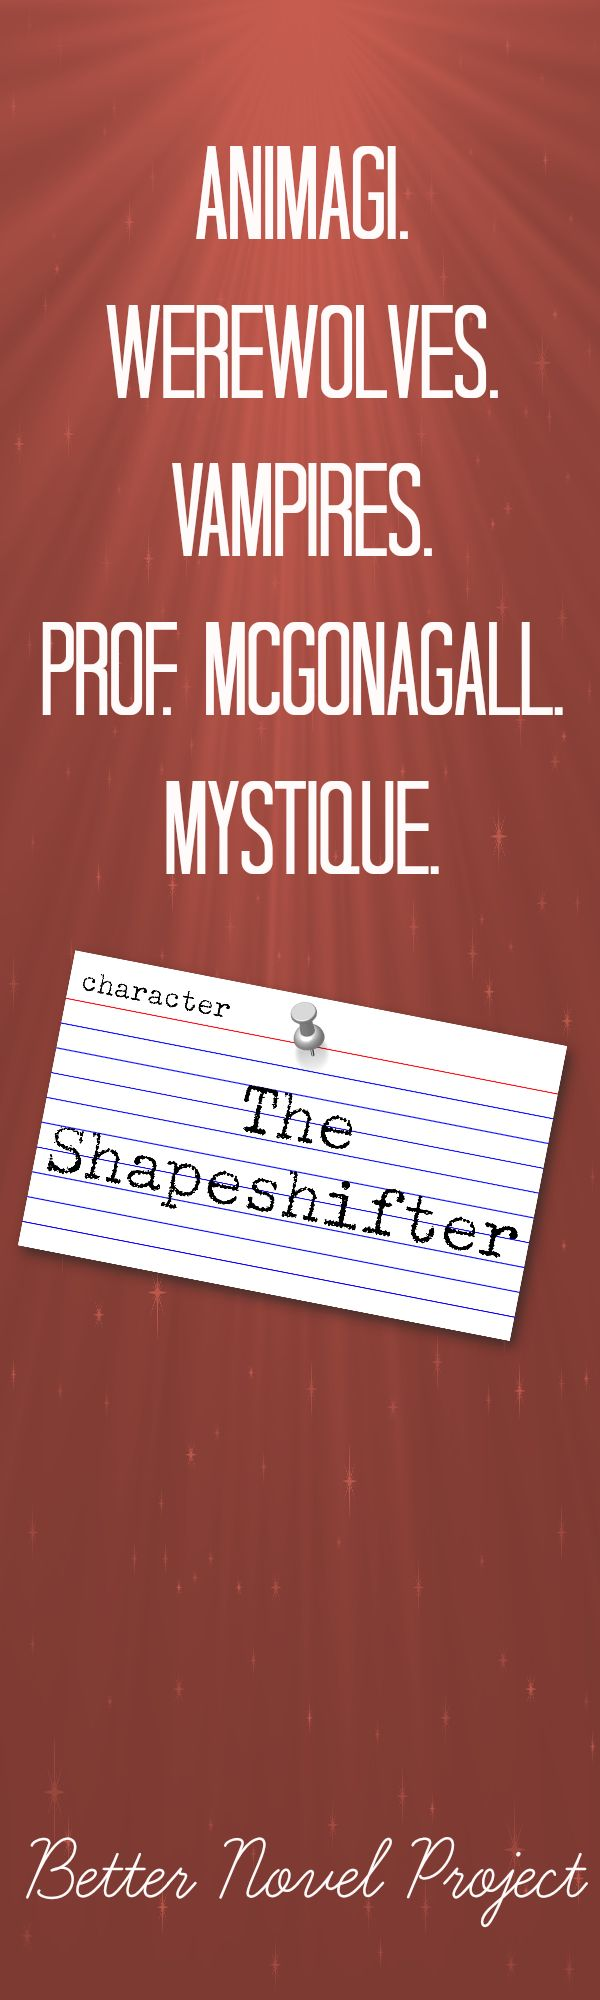 """As a fantasy, the Shapeshifter lets the reader escape the everyday world. As a """"two-faced"""" mechanism, the Shapeshifter helps show the character's inner conflict or unease about certain situations. And as a punishment, the The Shapeshifter adds some much needed oomph to the stakes. We know authors love the Shapeshifter archetype because the character appears in sequels too– think Polyjuice Potion in subsequent Harry Potter novels and the werewolves in the Twilight Saga."""